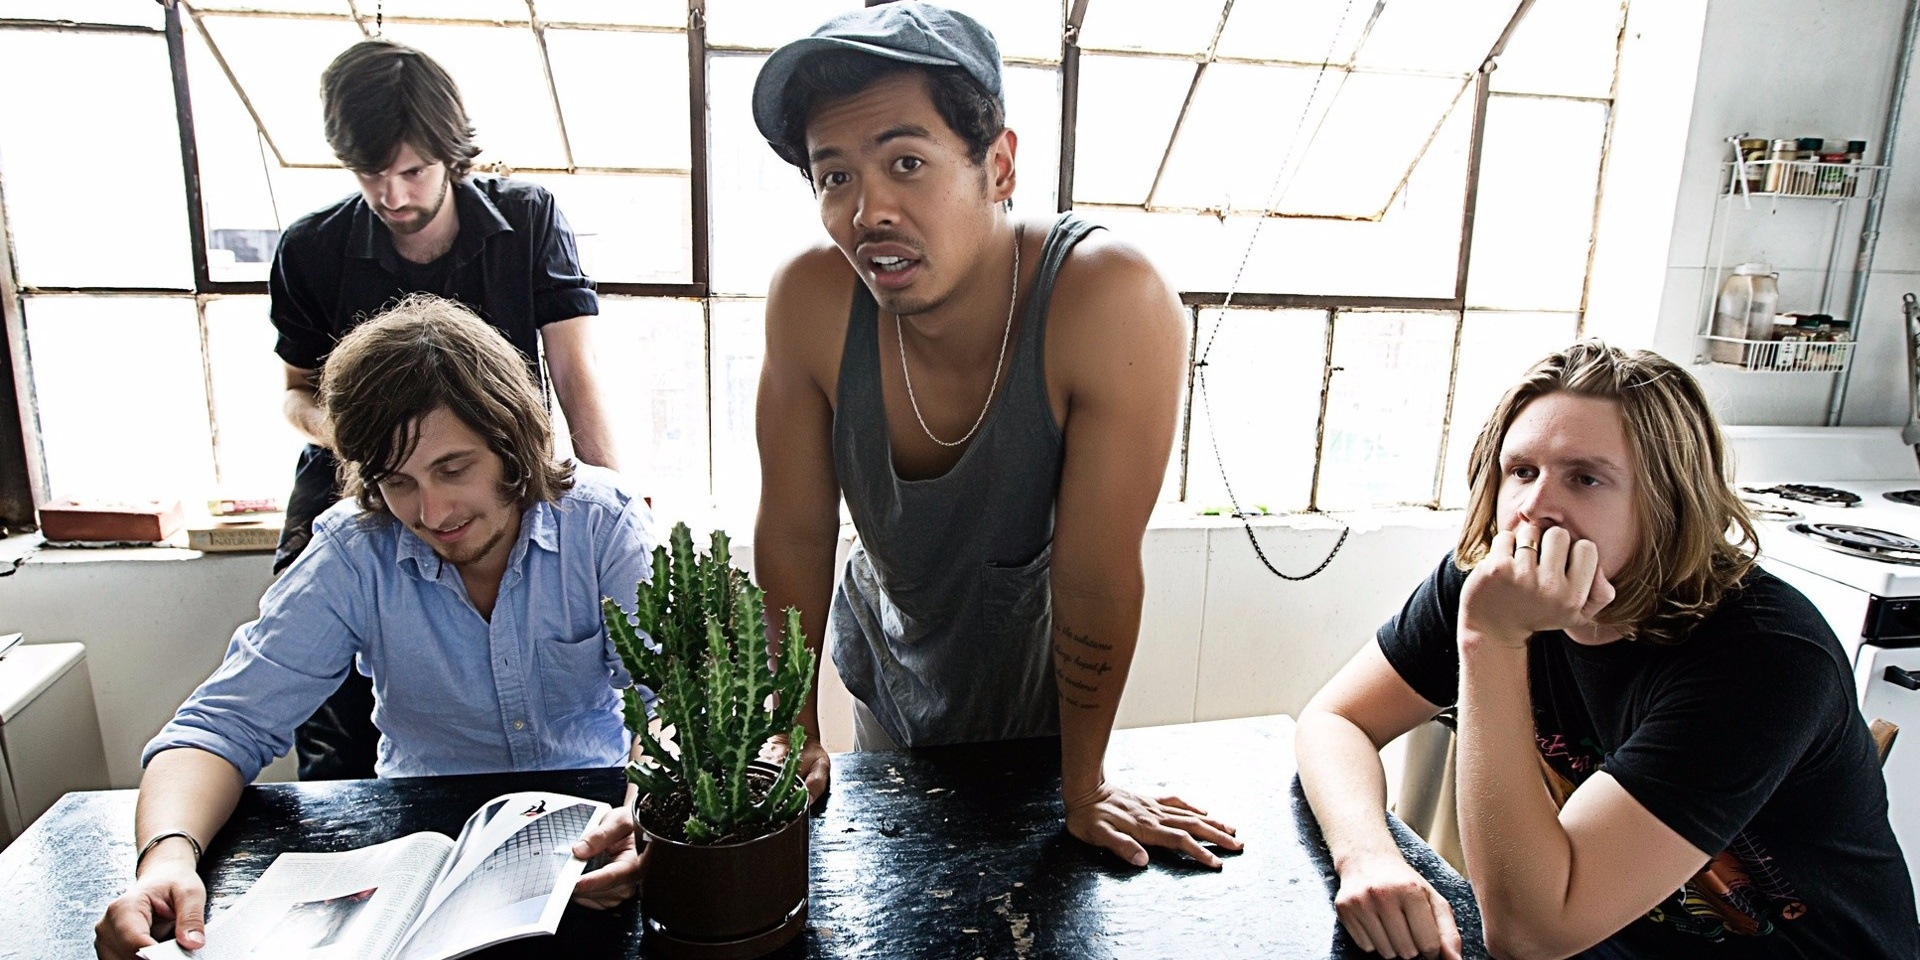 Singaporean musicians have the sweetest disposition for The Temper Trap